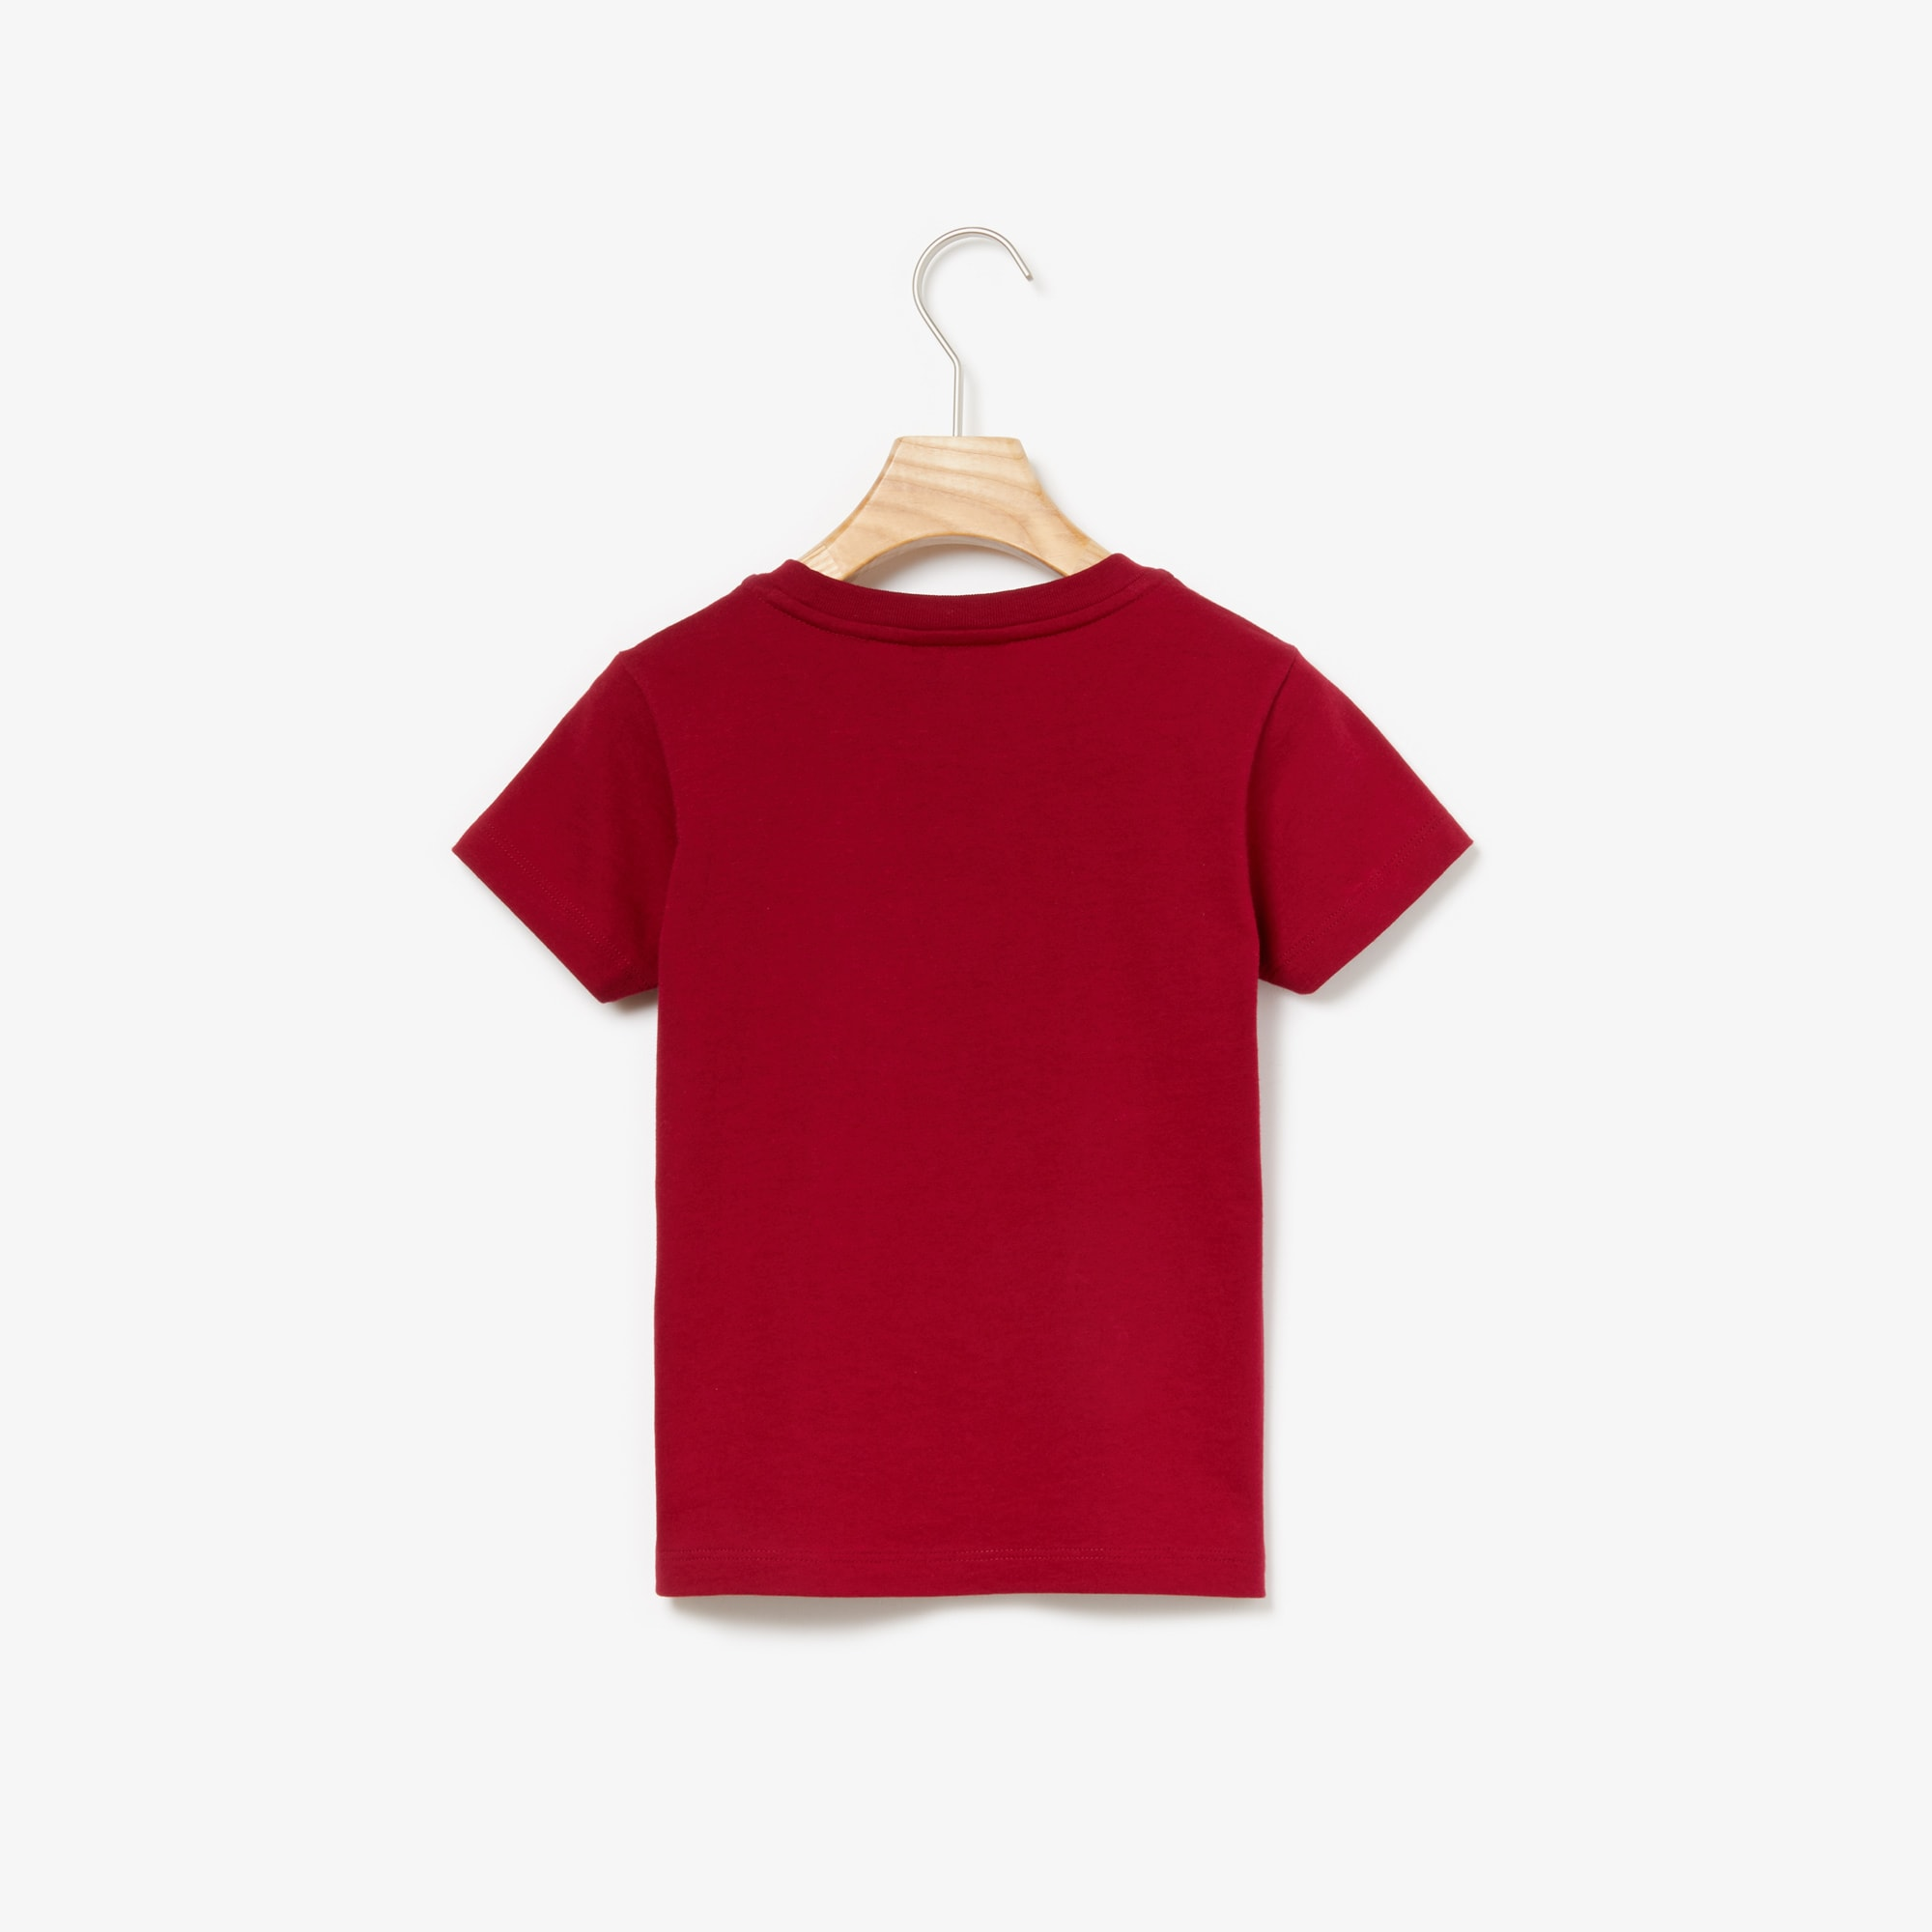 Boys' Crewneck Graphic Cotton T-shirt